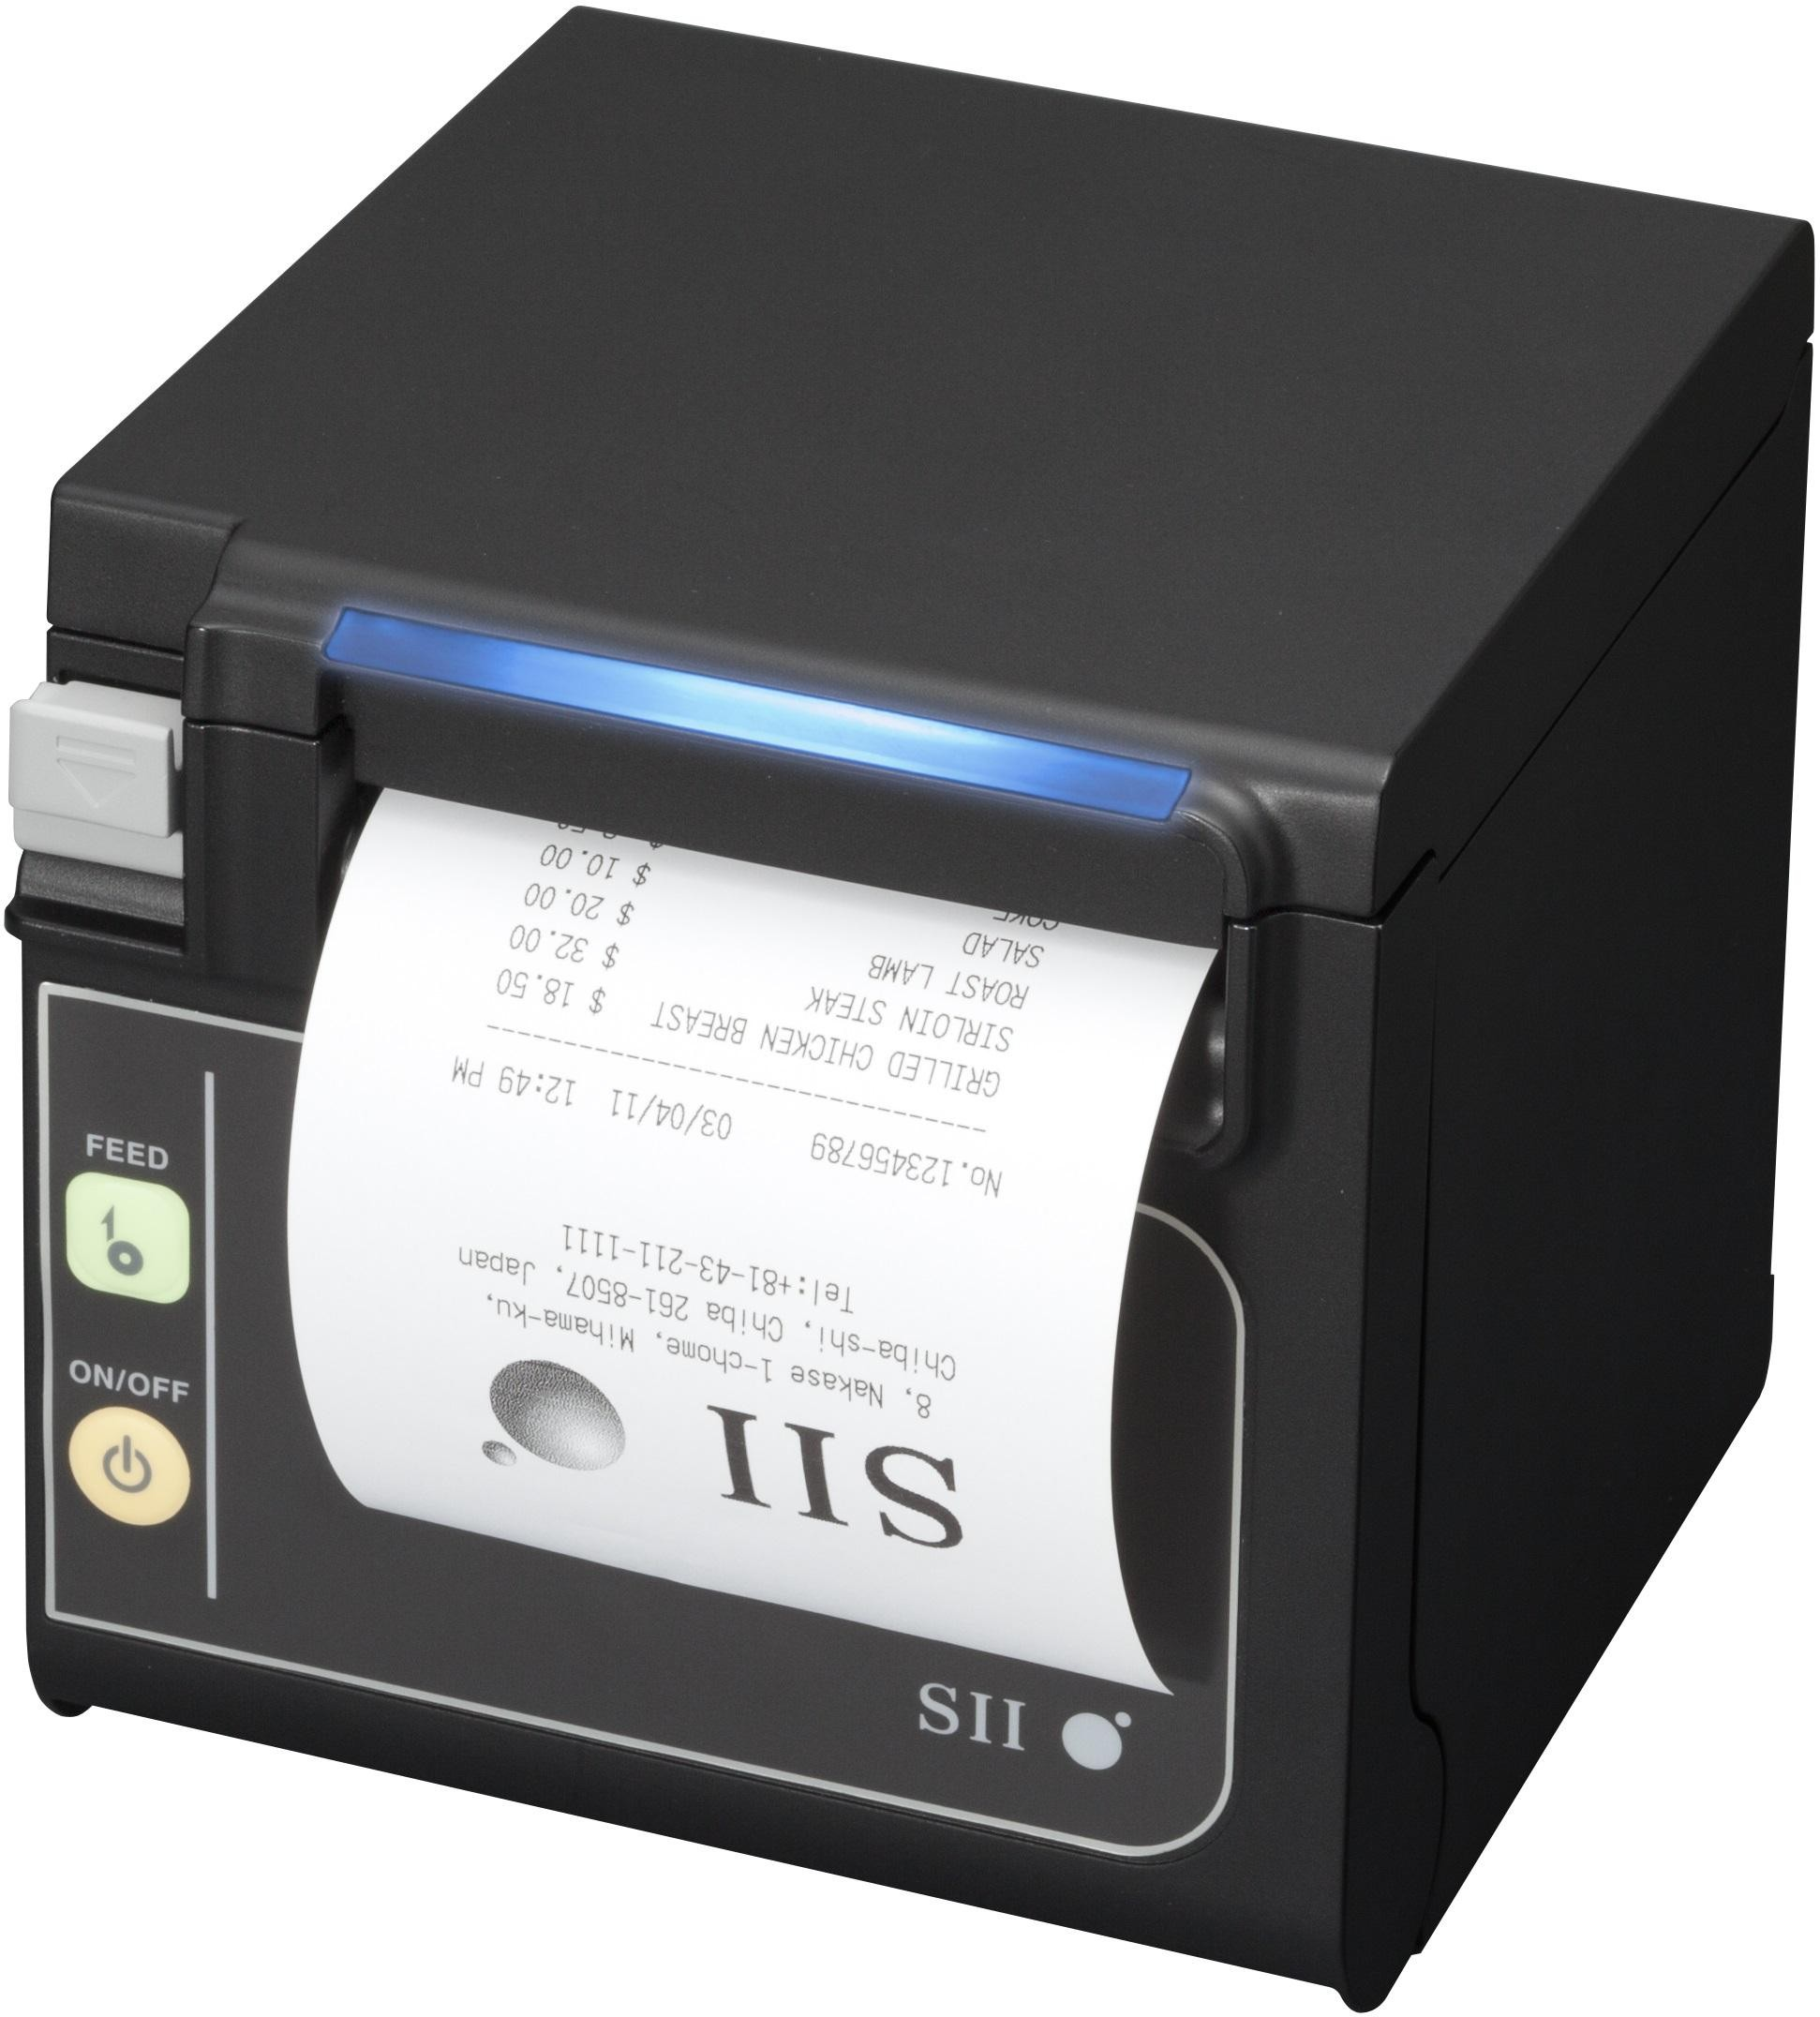 Panel mount thermal printer